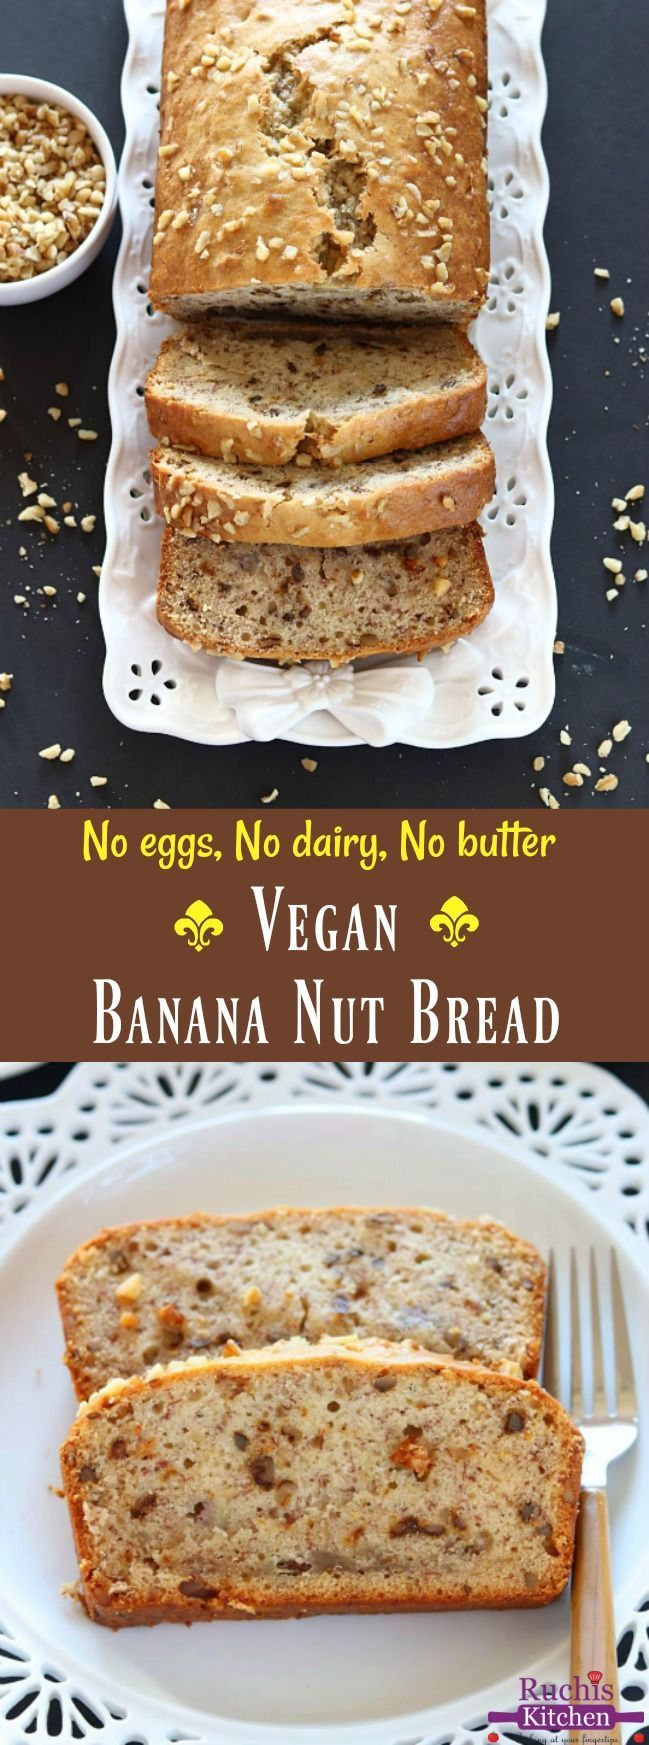 Loaded with chopped walnut and bananas, this Vegan Banana Nut Bread is perfect for breakfast, dessert or as an afternoon snack! #vegan #walnutbananabread #holidaybaking #veganbaking #veganbreads